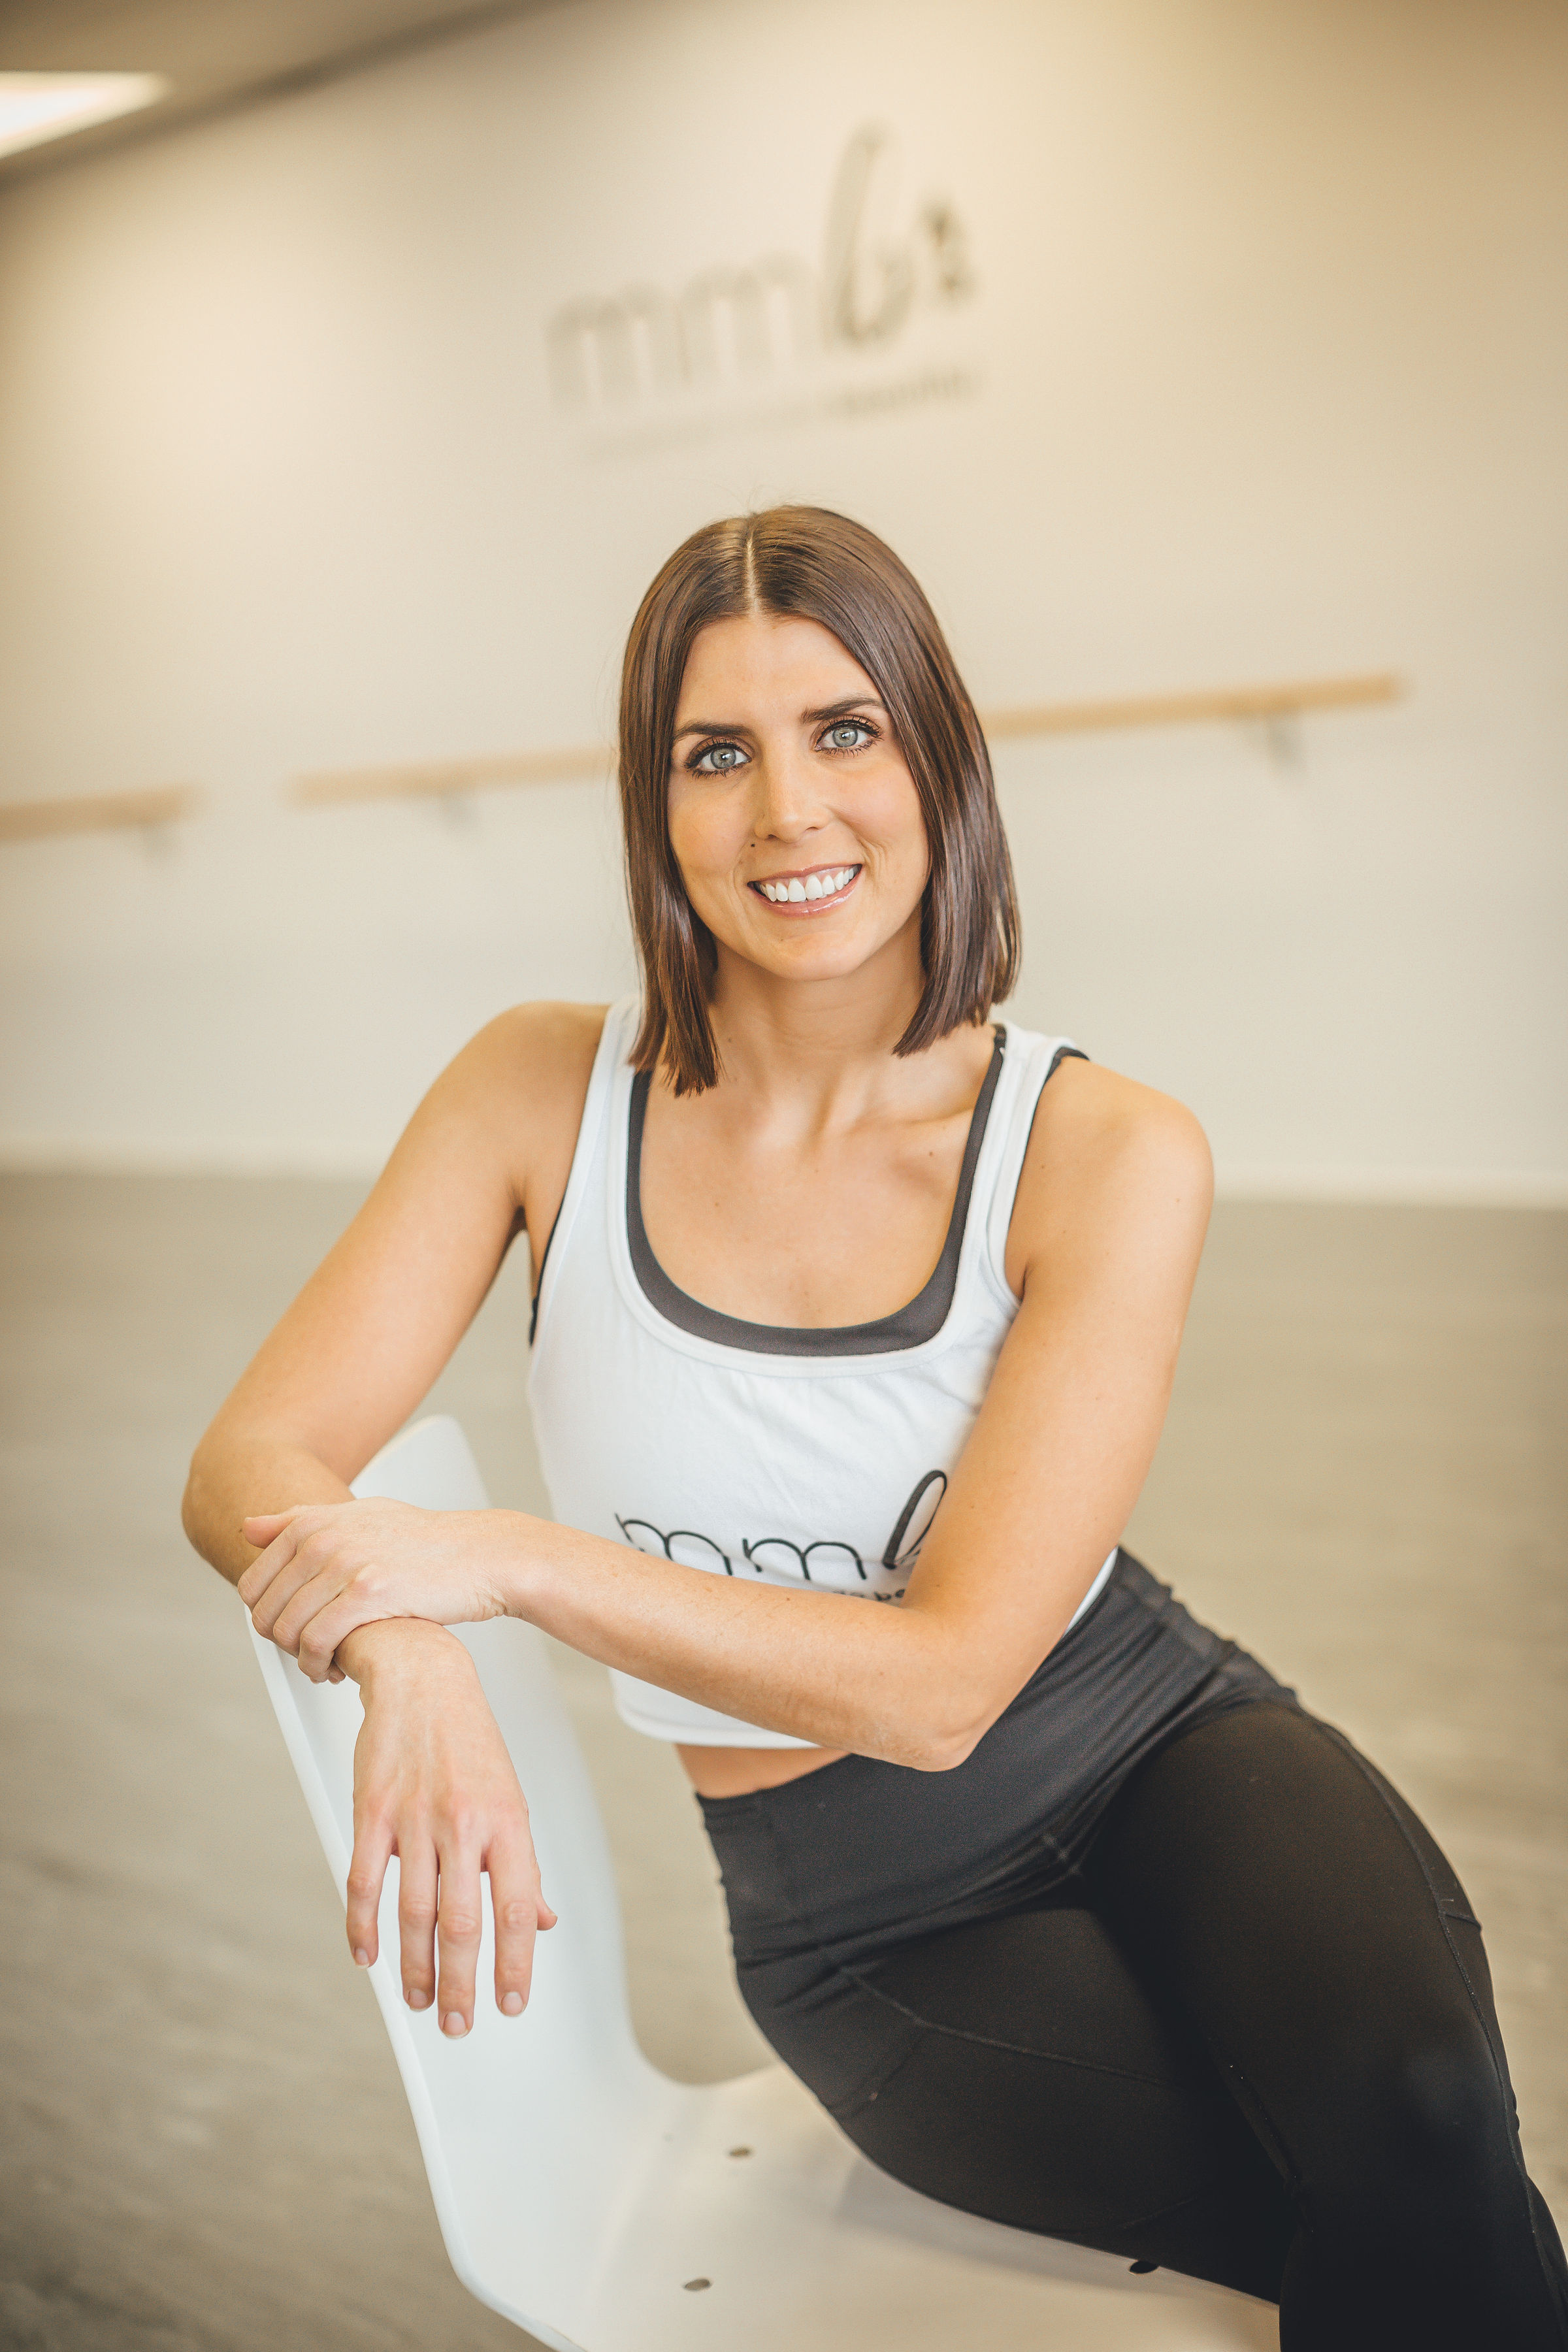 Carly Schultz-Instructor of Cardio Dance and Barre-Sculpt. Carly is a founding instructor at MMB and has been an integral part of the creation of our program. Her classes are both challenging and so completely creative,